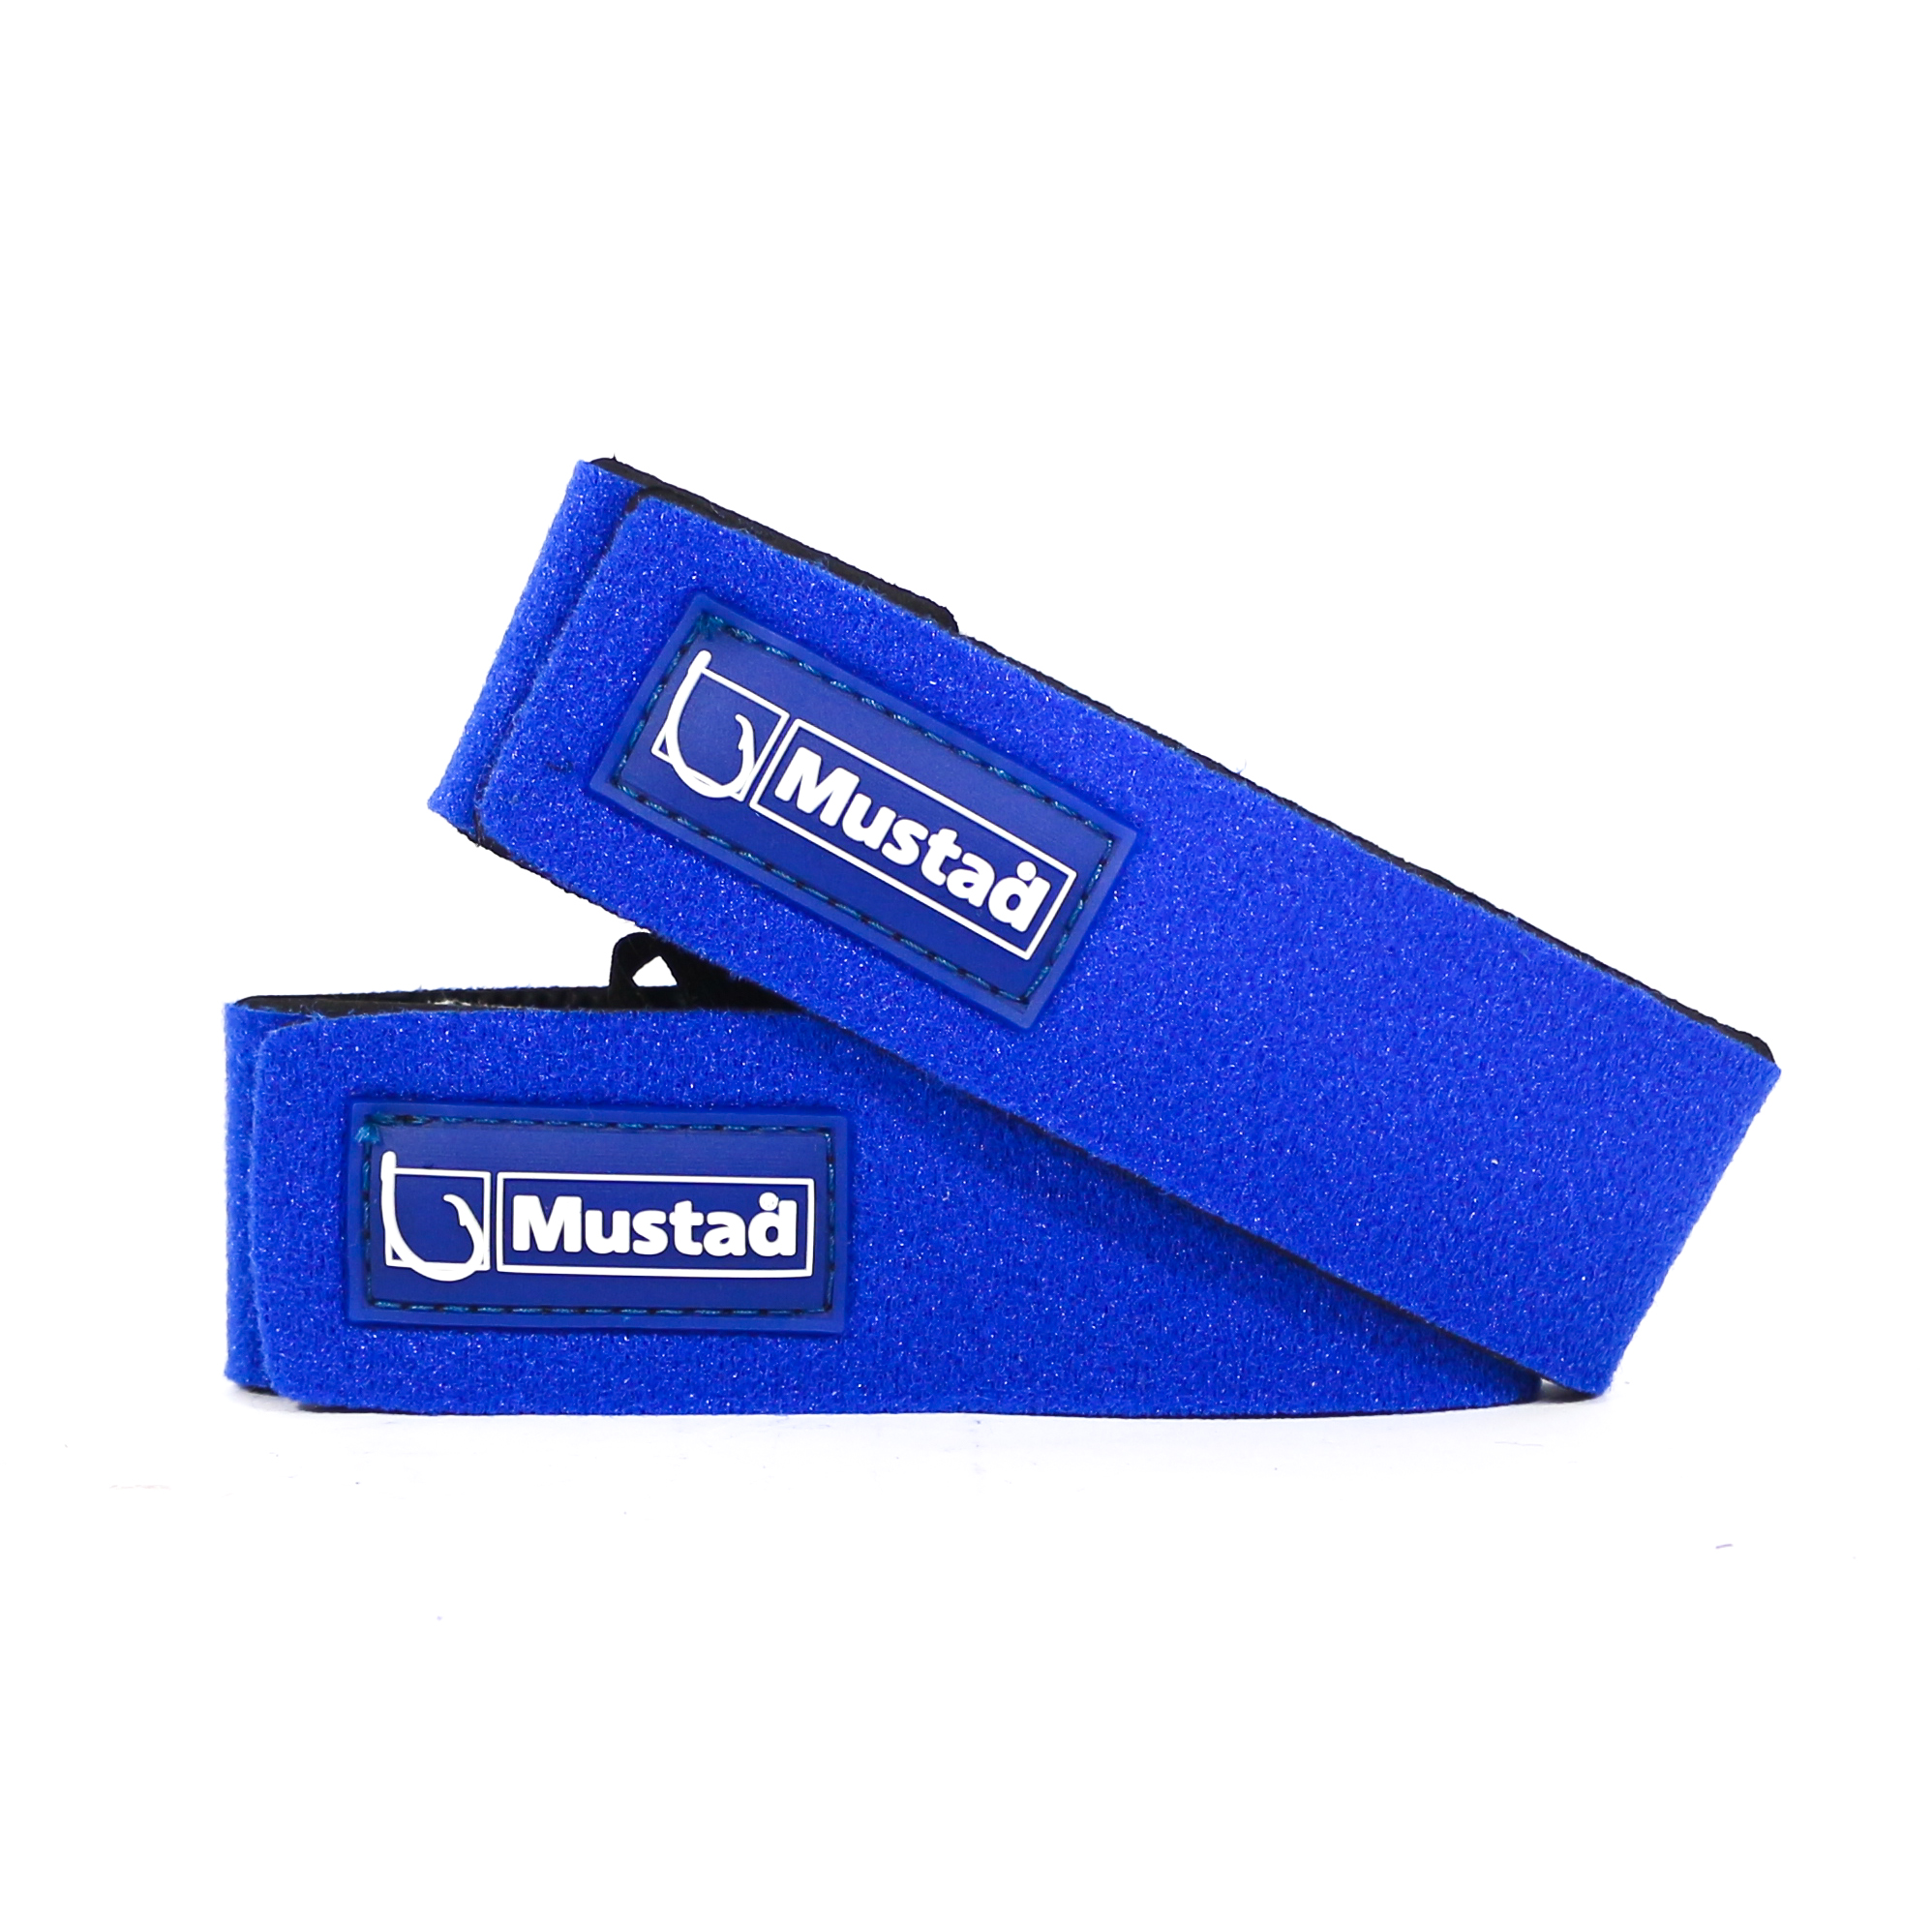 Mustad Rod Band Neoprene Blue Size M (5452)